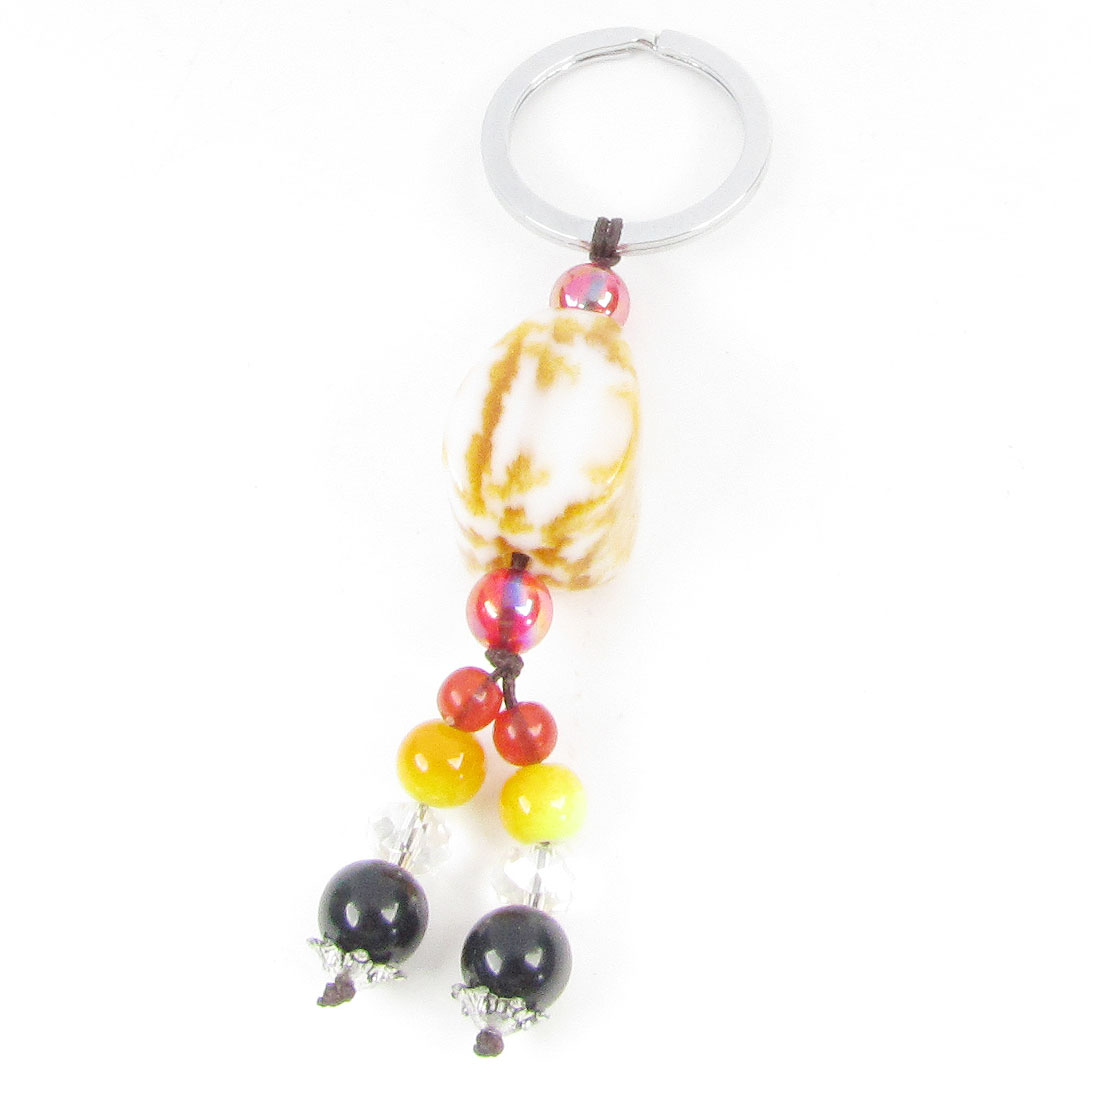 Yellow Bead Plastic Faux Jade Pendant 3cm Dia Rings Key Ring Keychain